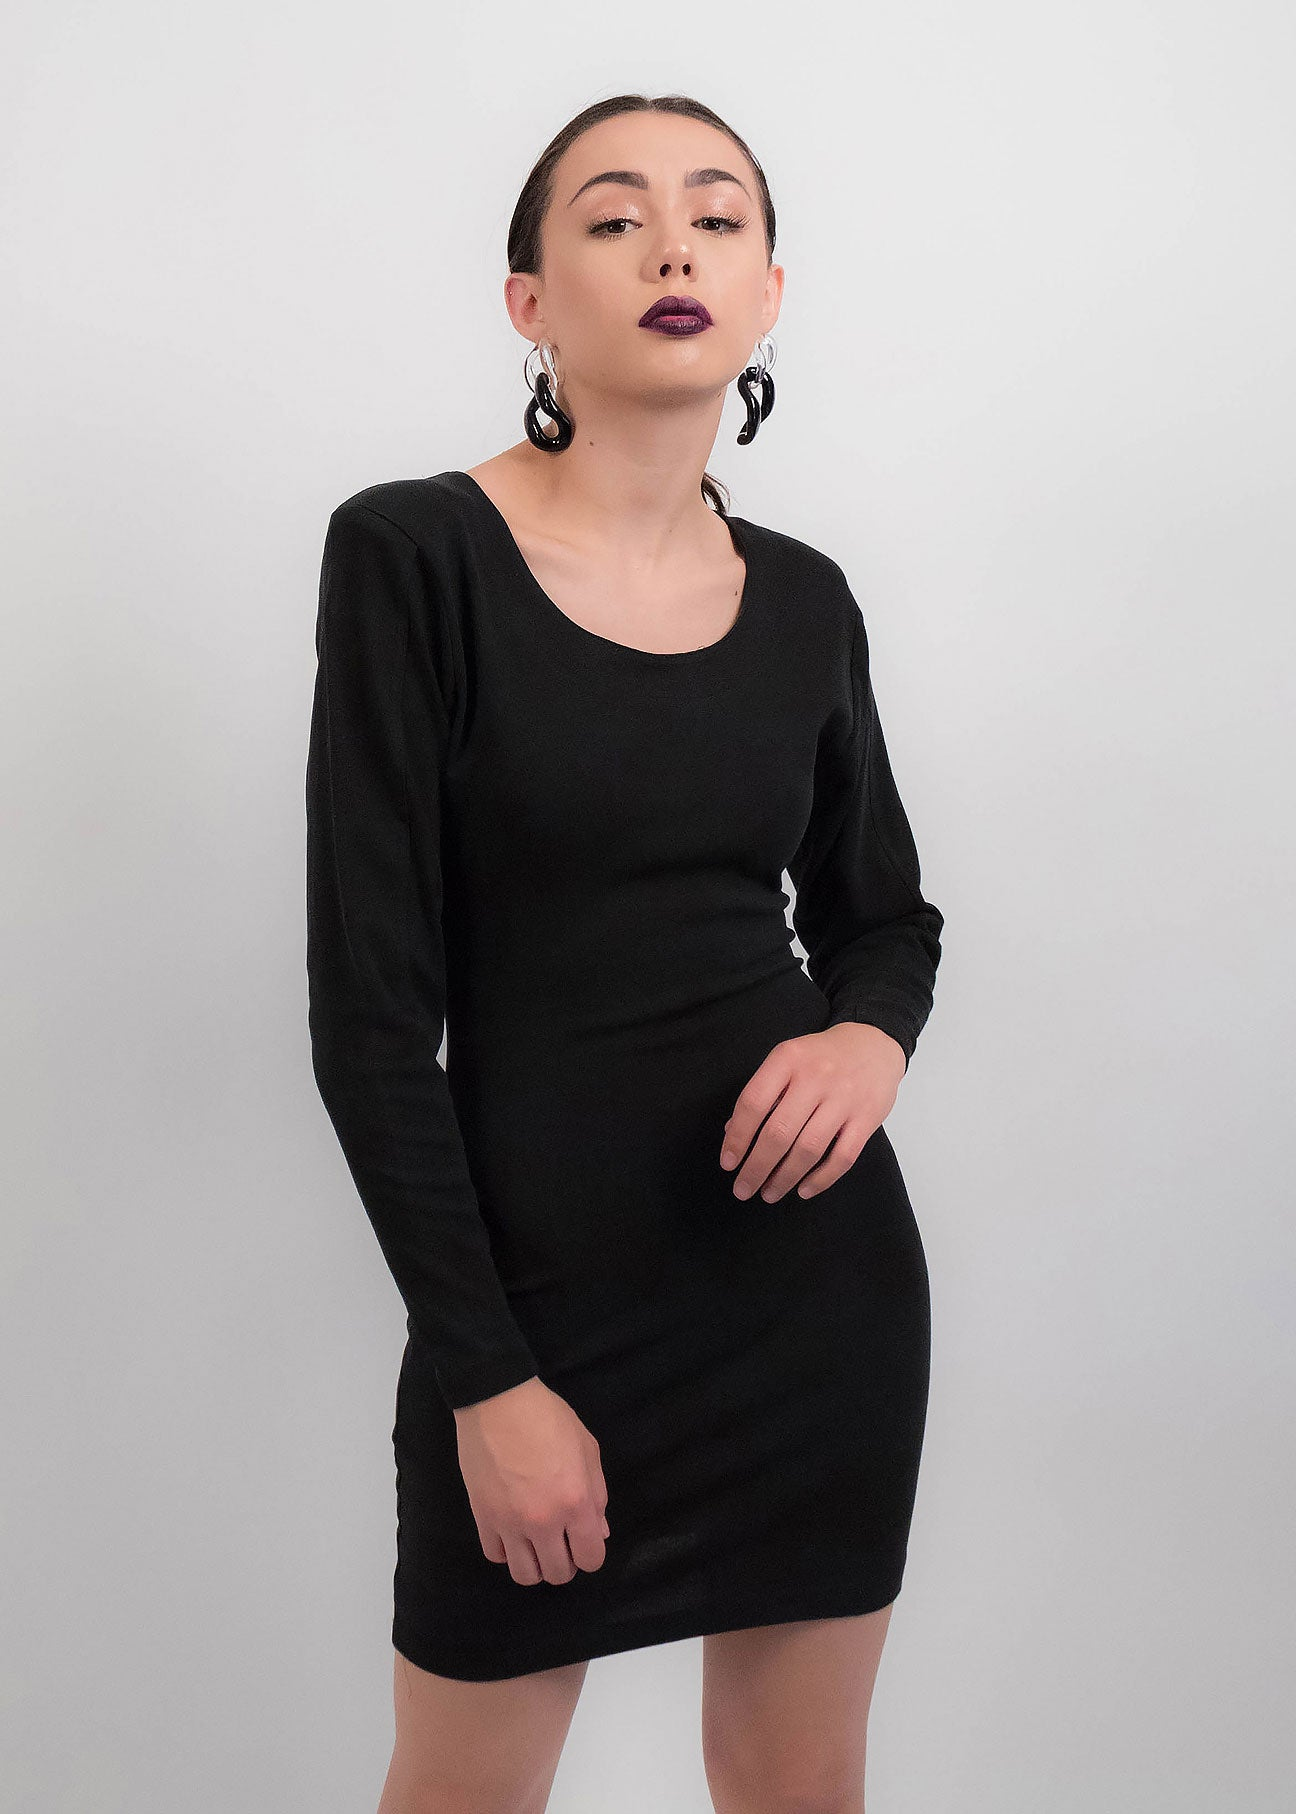 80s Black Body-Con Dress